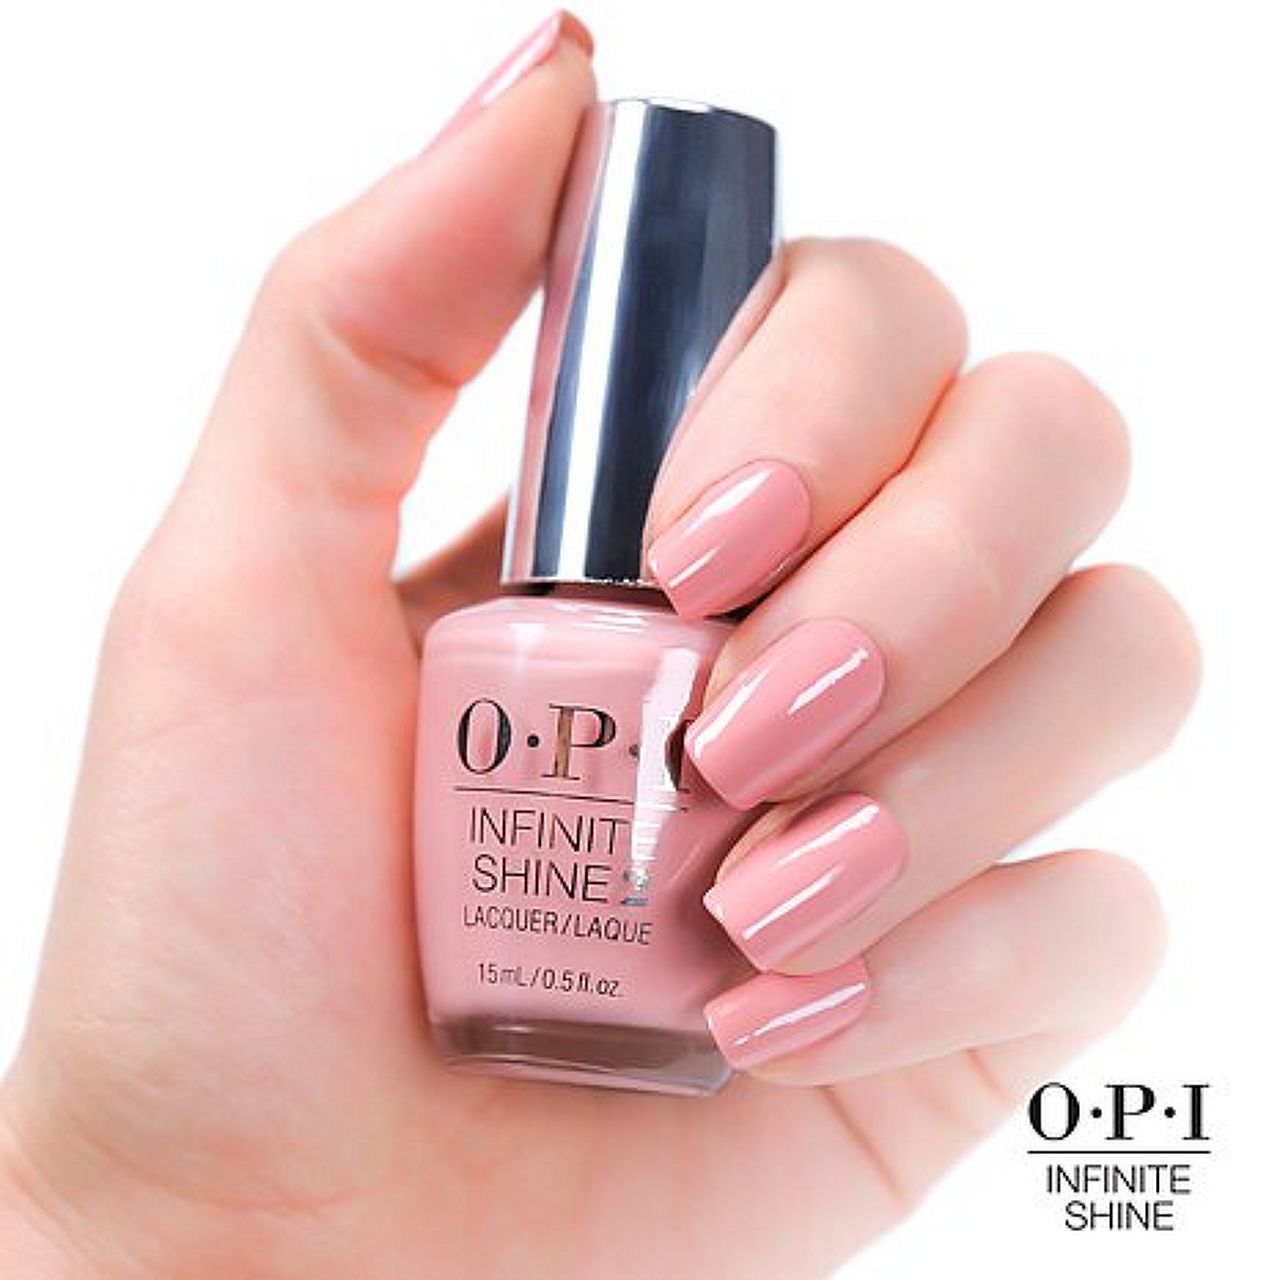 Opi Infinite Shine You Can Count On It Out Of Stock Opi Infinite Shine Isl30 You Can Count On It Paula S Choice เคร องสำอางค และสก นแคร ส ด Opi Infinite Shine How To Do Nails Infinite Shine